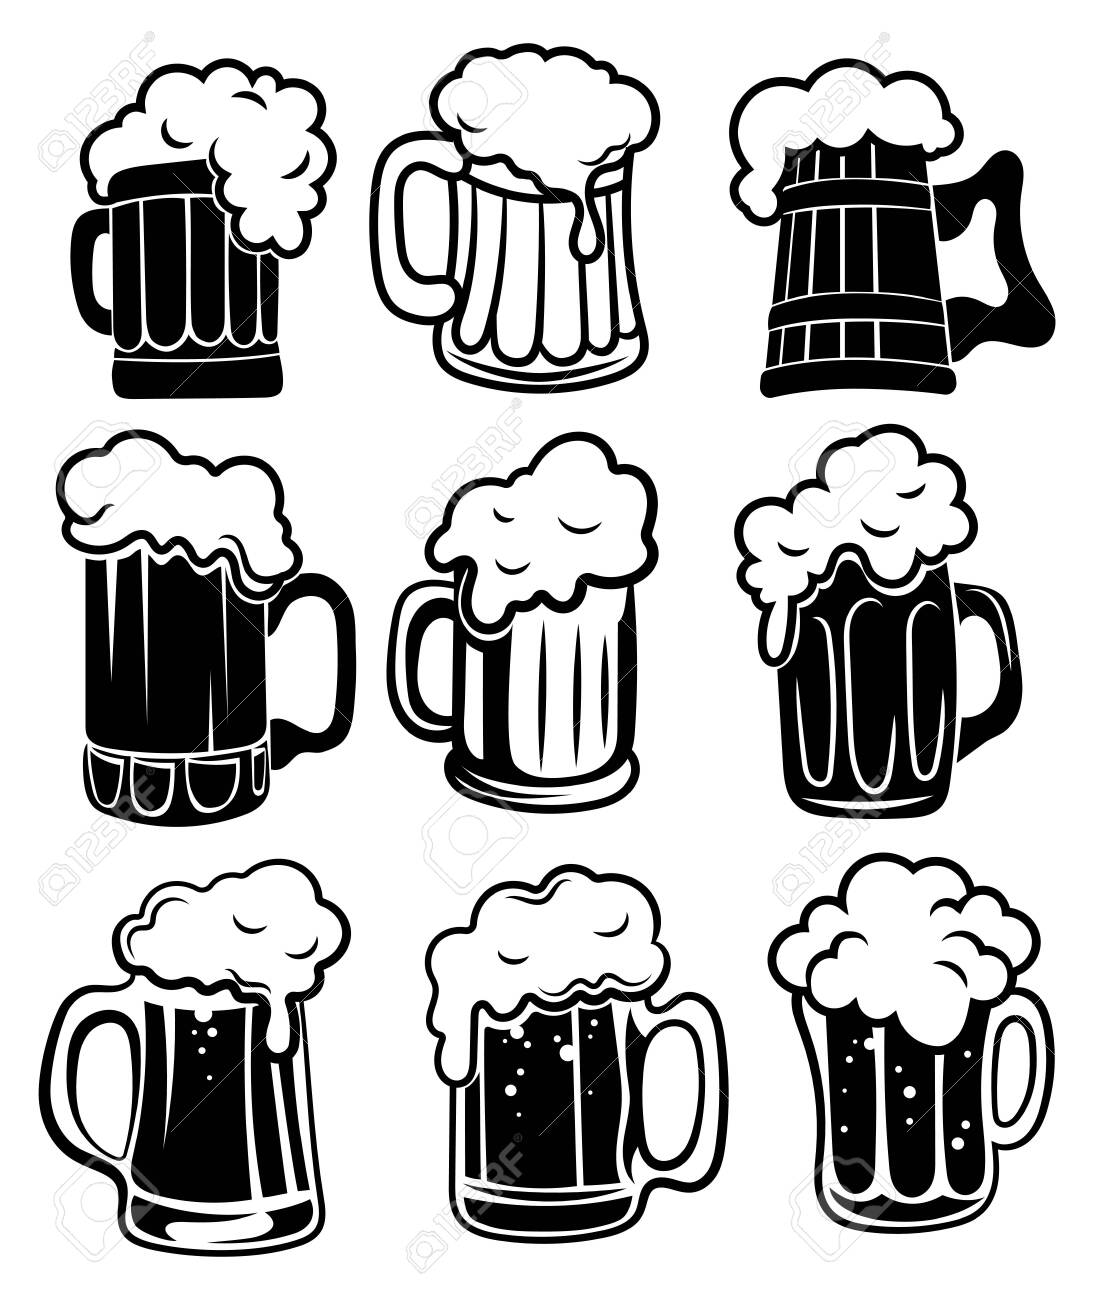 Set Of Glasses With Beer A Collection Of Stylized Beer Mugs Royalty Free Cliparts Vectors And Stock Illustration Image 130317057